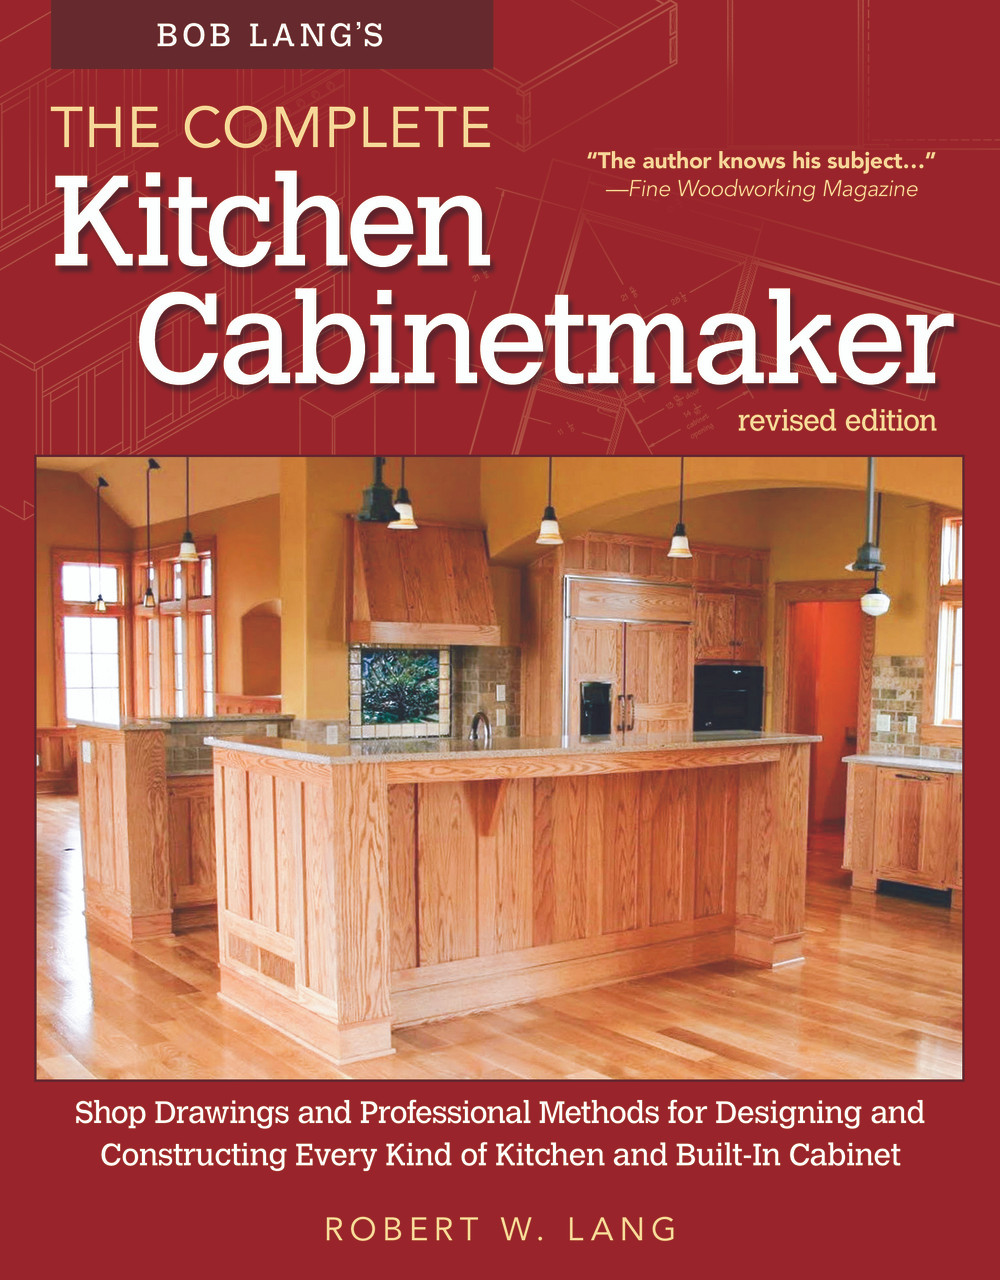 The Complete Kitchen Cabinetmaker